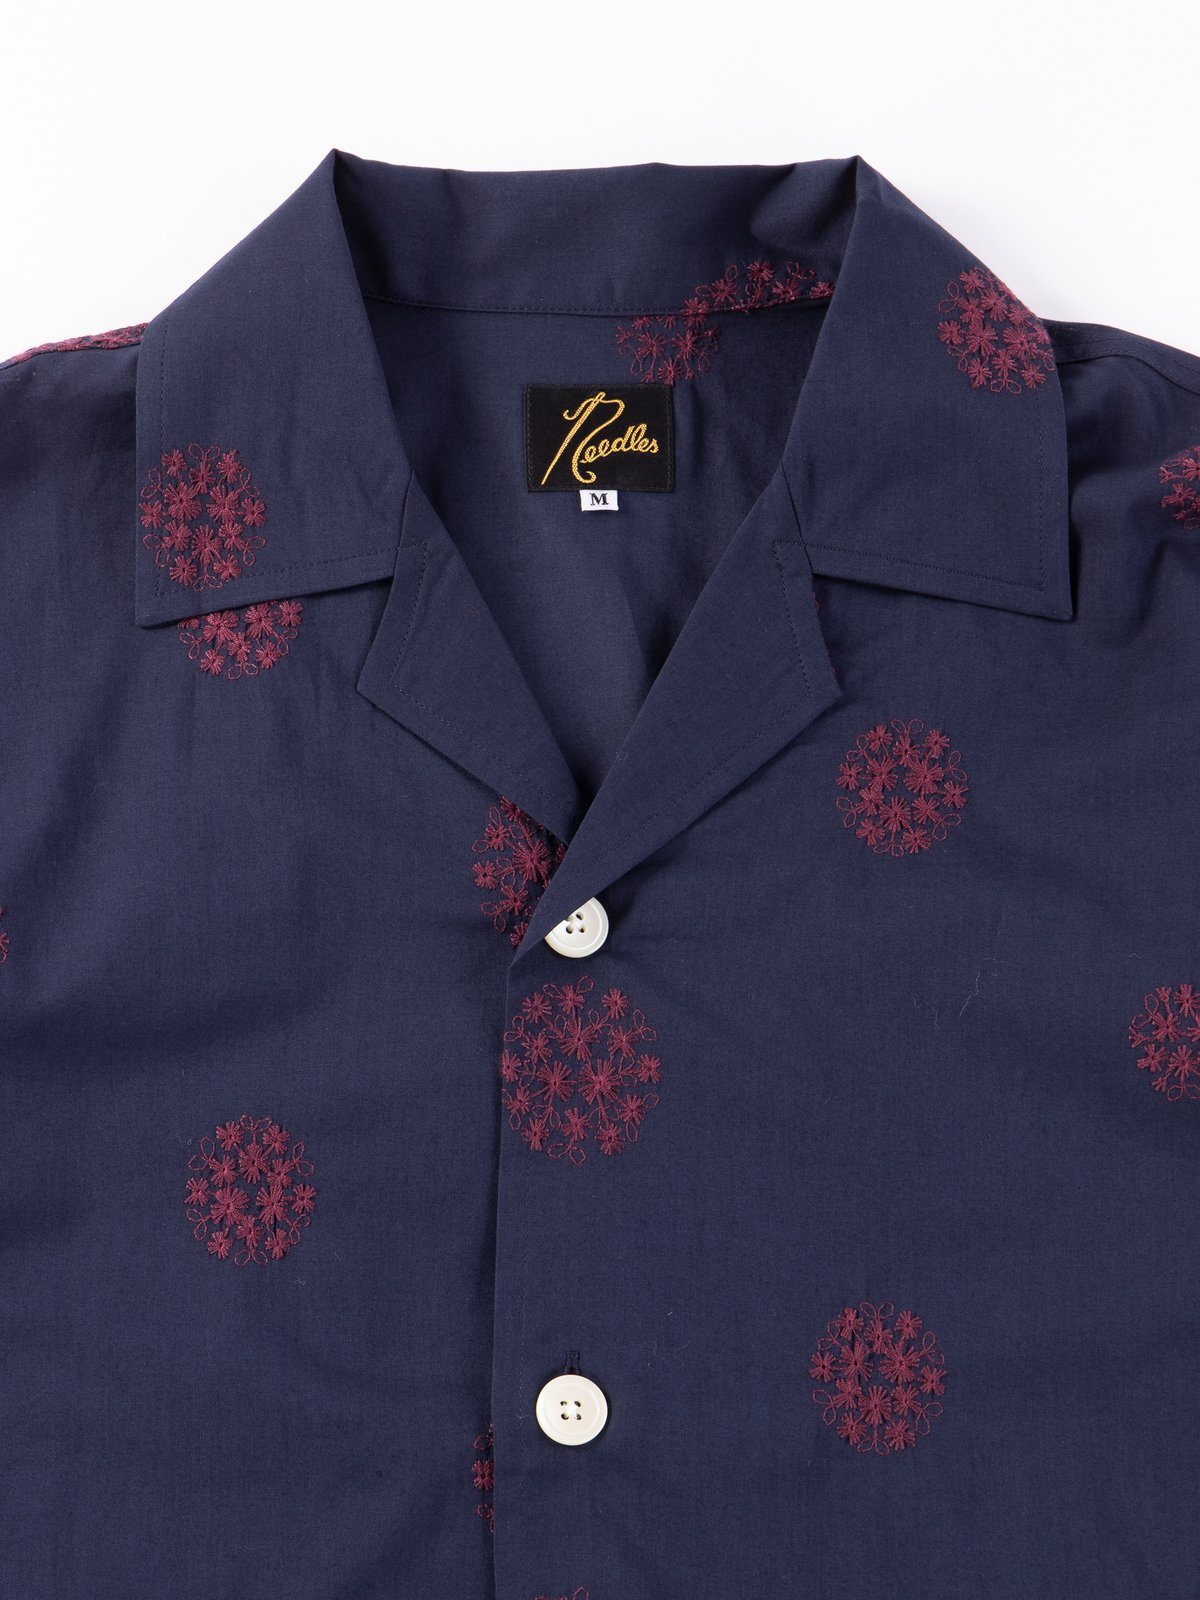 Navy Floral Dot Embroidered Cabana Shirt - Image 2